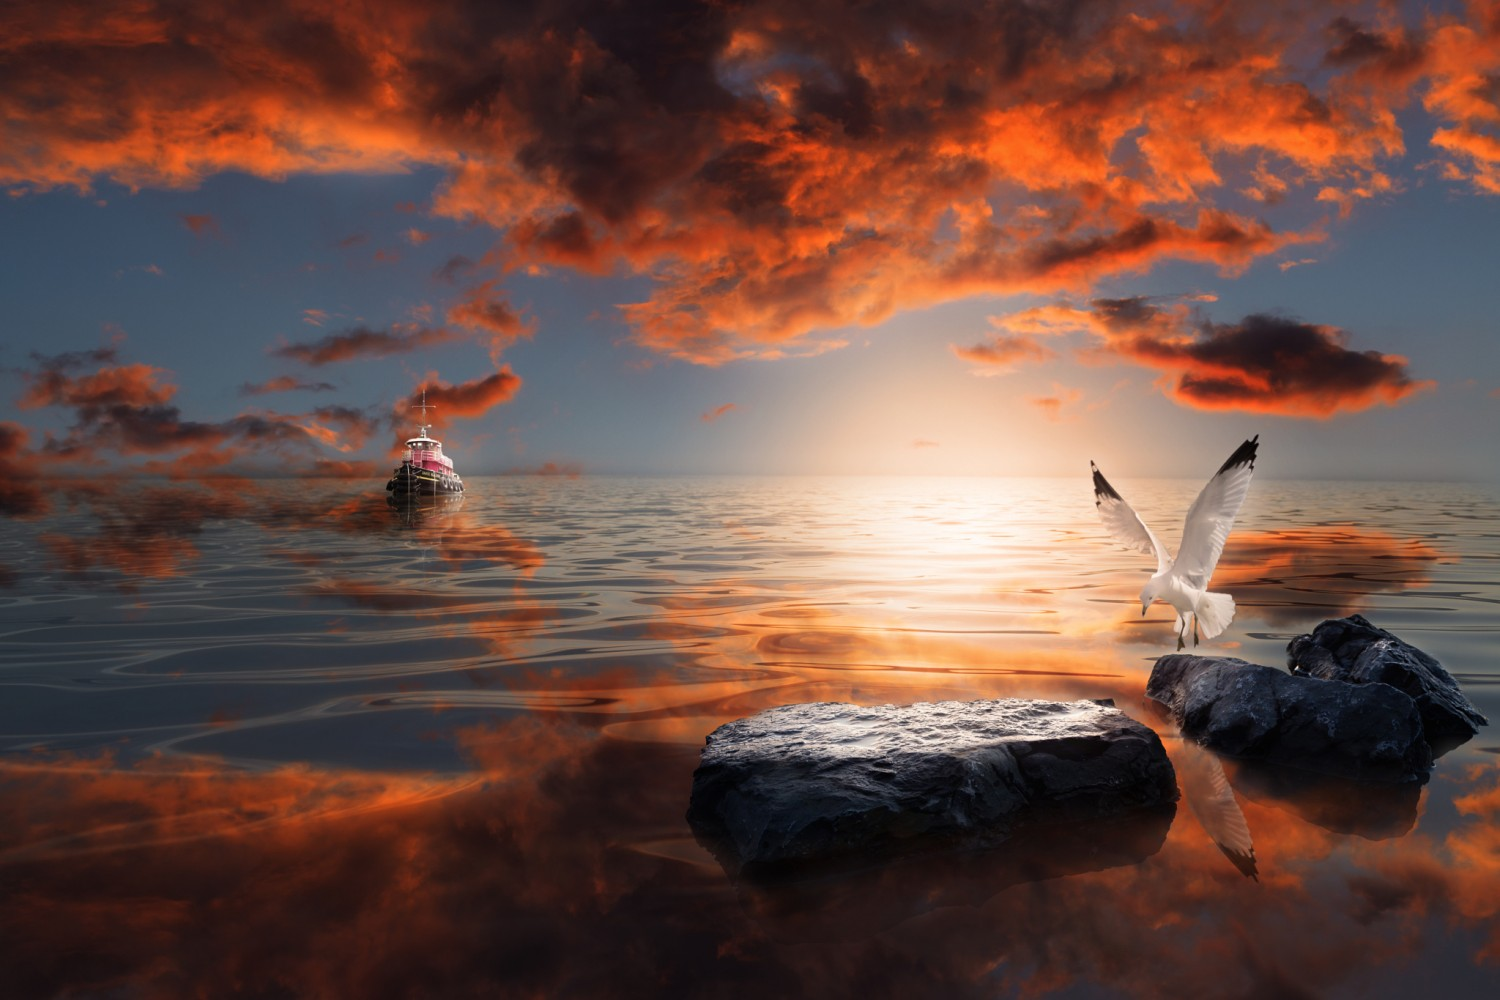 Tutorial: Learn How to Create a Surreal Seascape Using Your Imagination and Photoshop